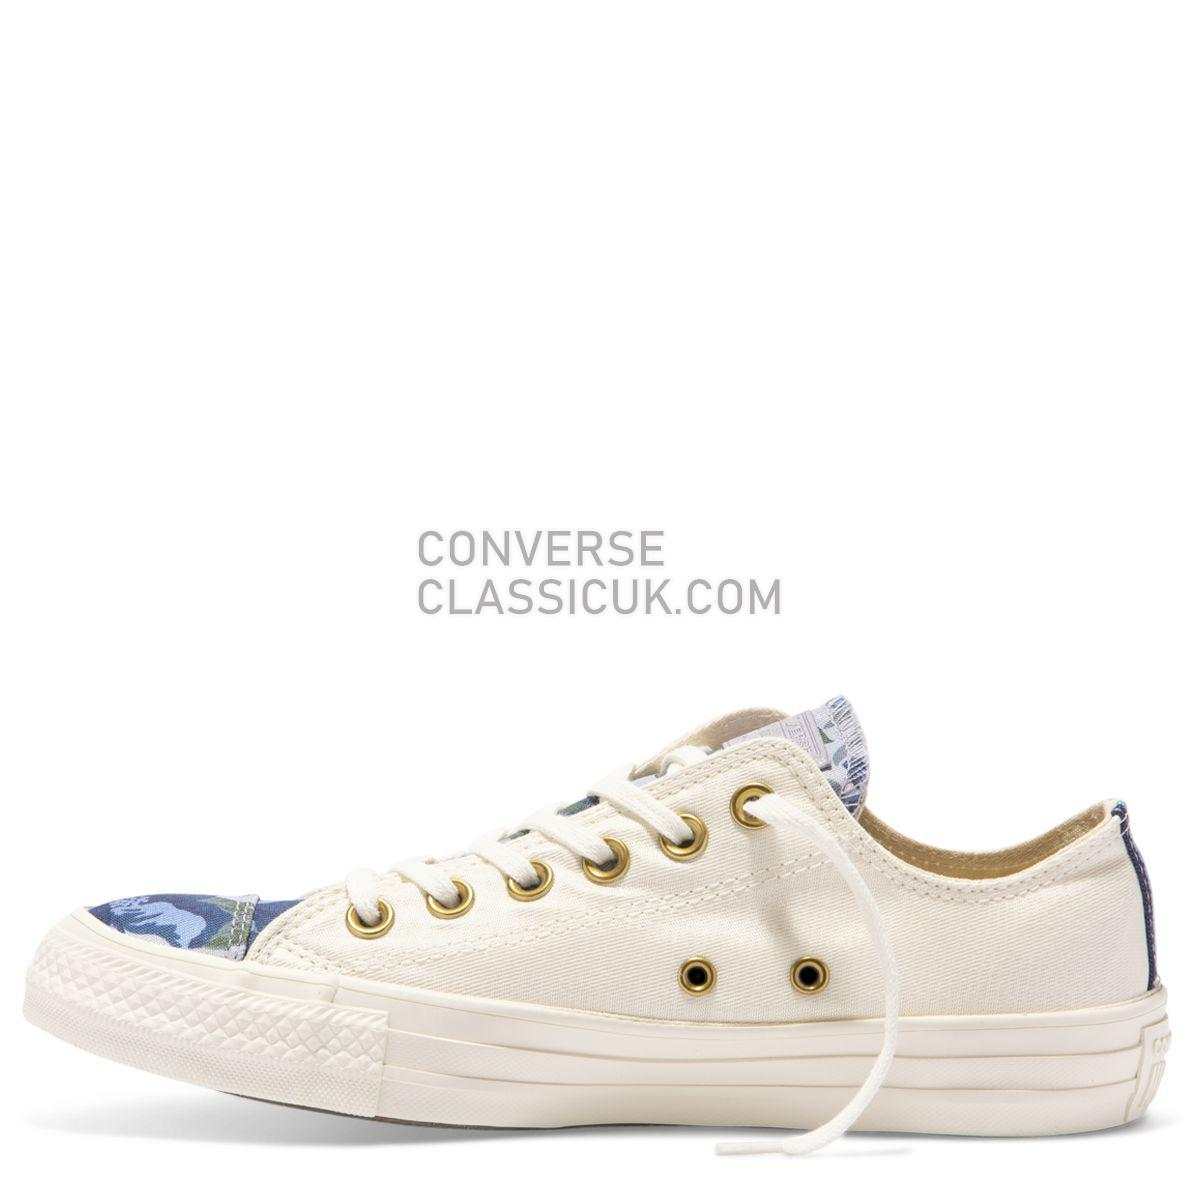 Converse Chuck Taylor All Star Parkway Floral Low Top Egret Womens 561665 Egret/Provence Purple/Egret Shoes